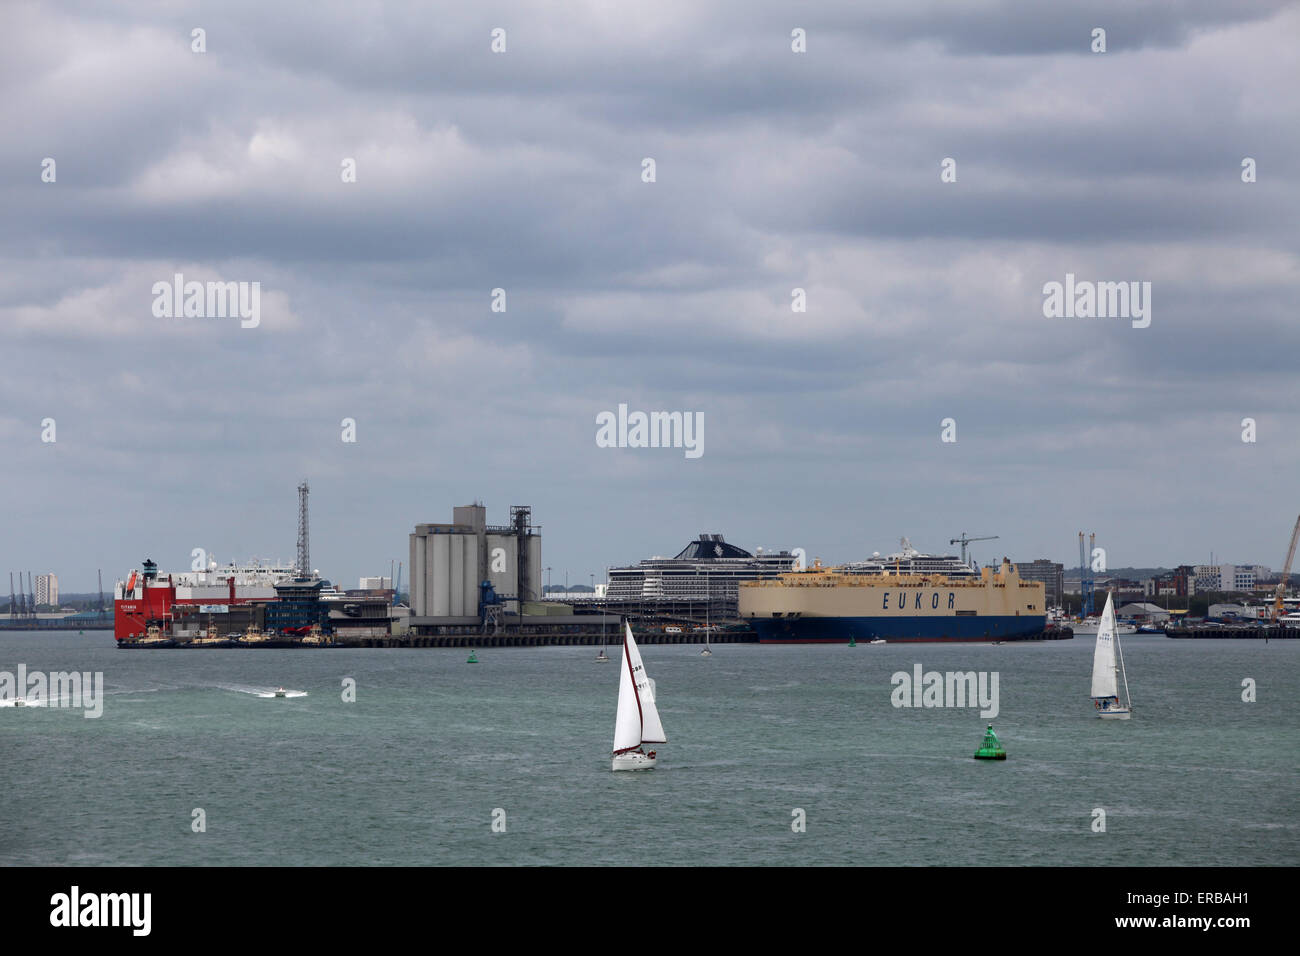 Dock Head in Southampton port - Stock Image